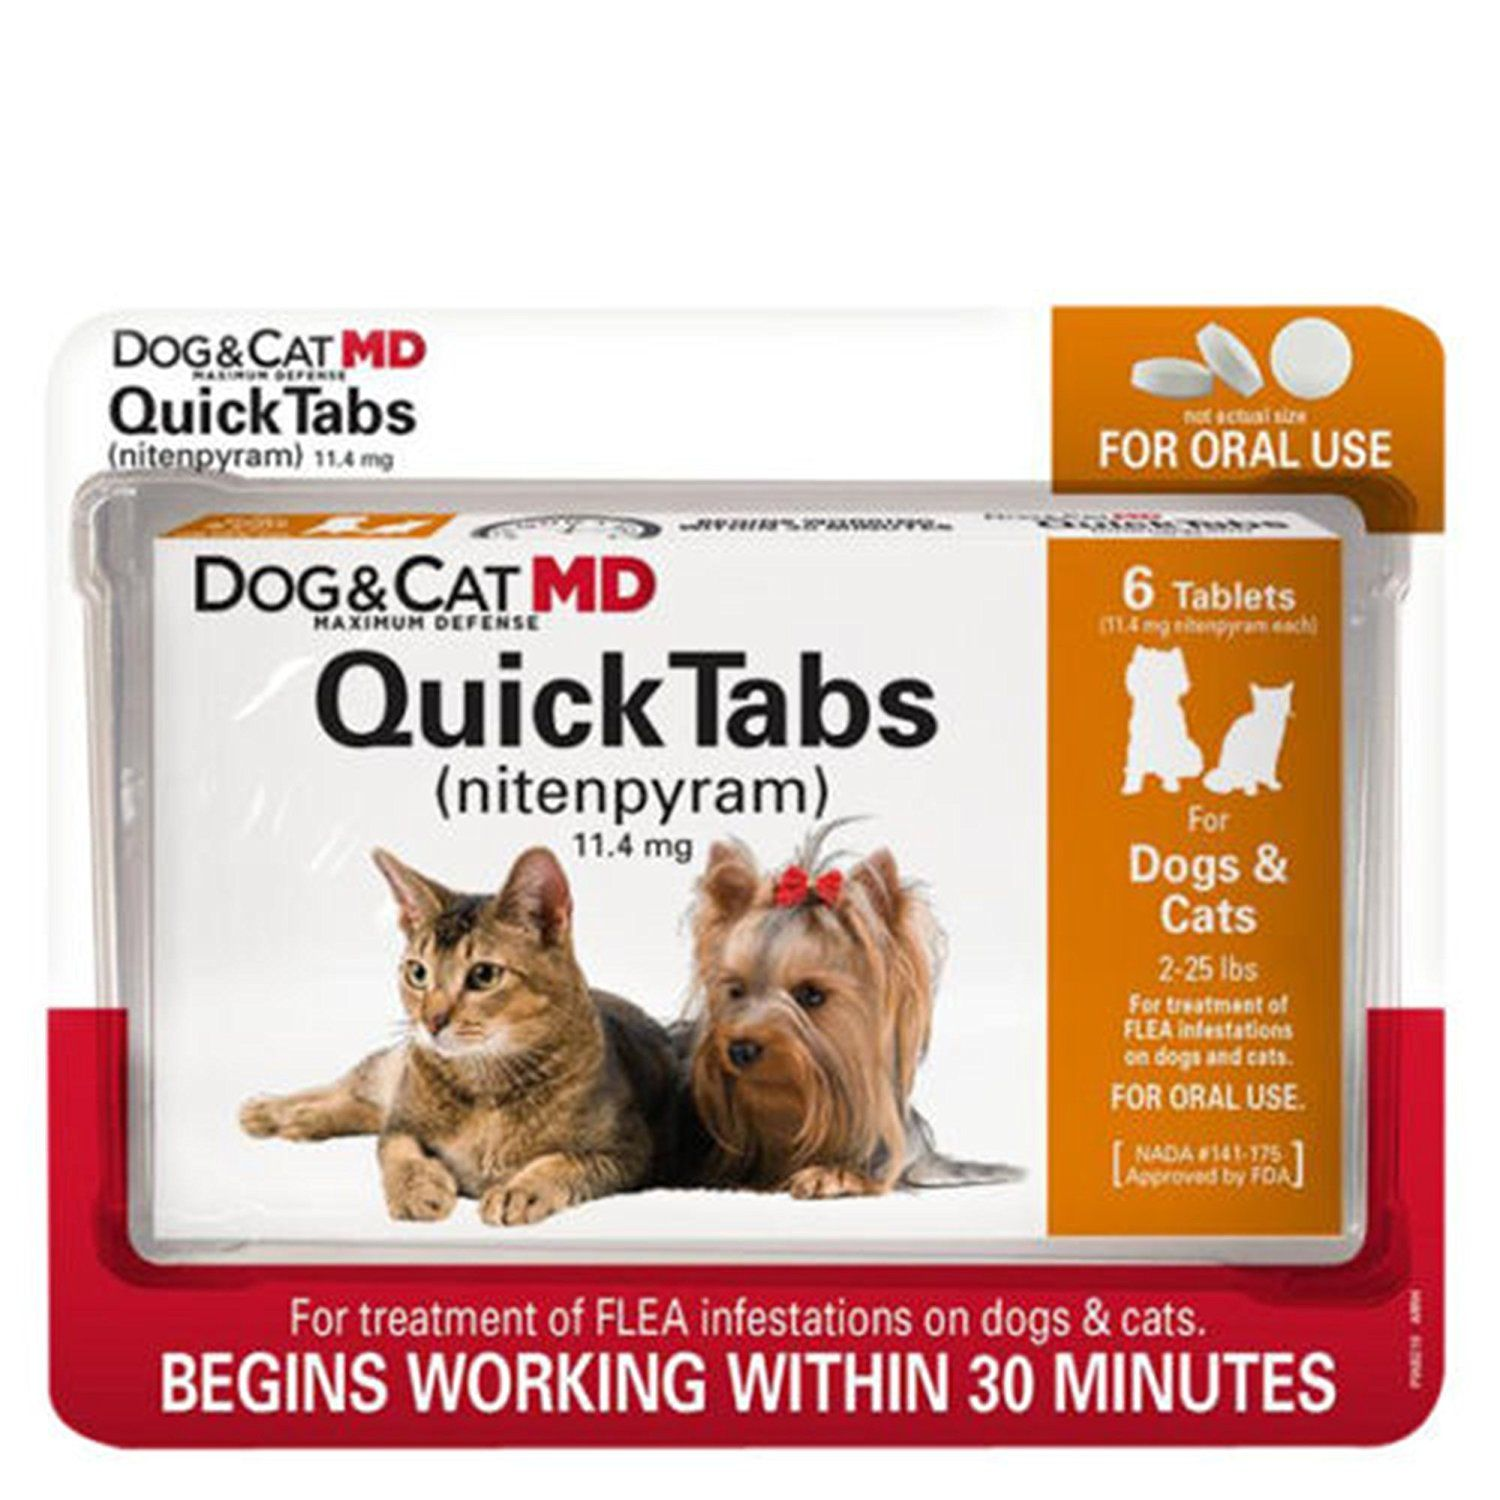 New Dog And Cat Md Quick Tabs For 2 25 Lbs Nitenpyram Capstar Remarkable Product Available Now F Flea Treatment Flea Medicine For Cats Cat Medicine